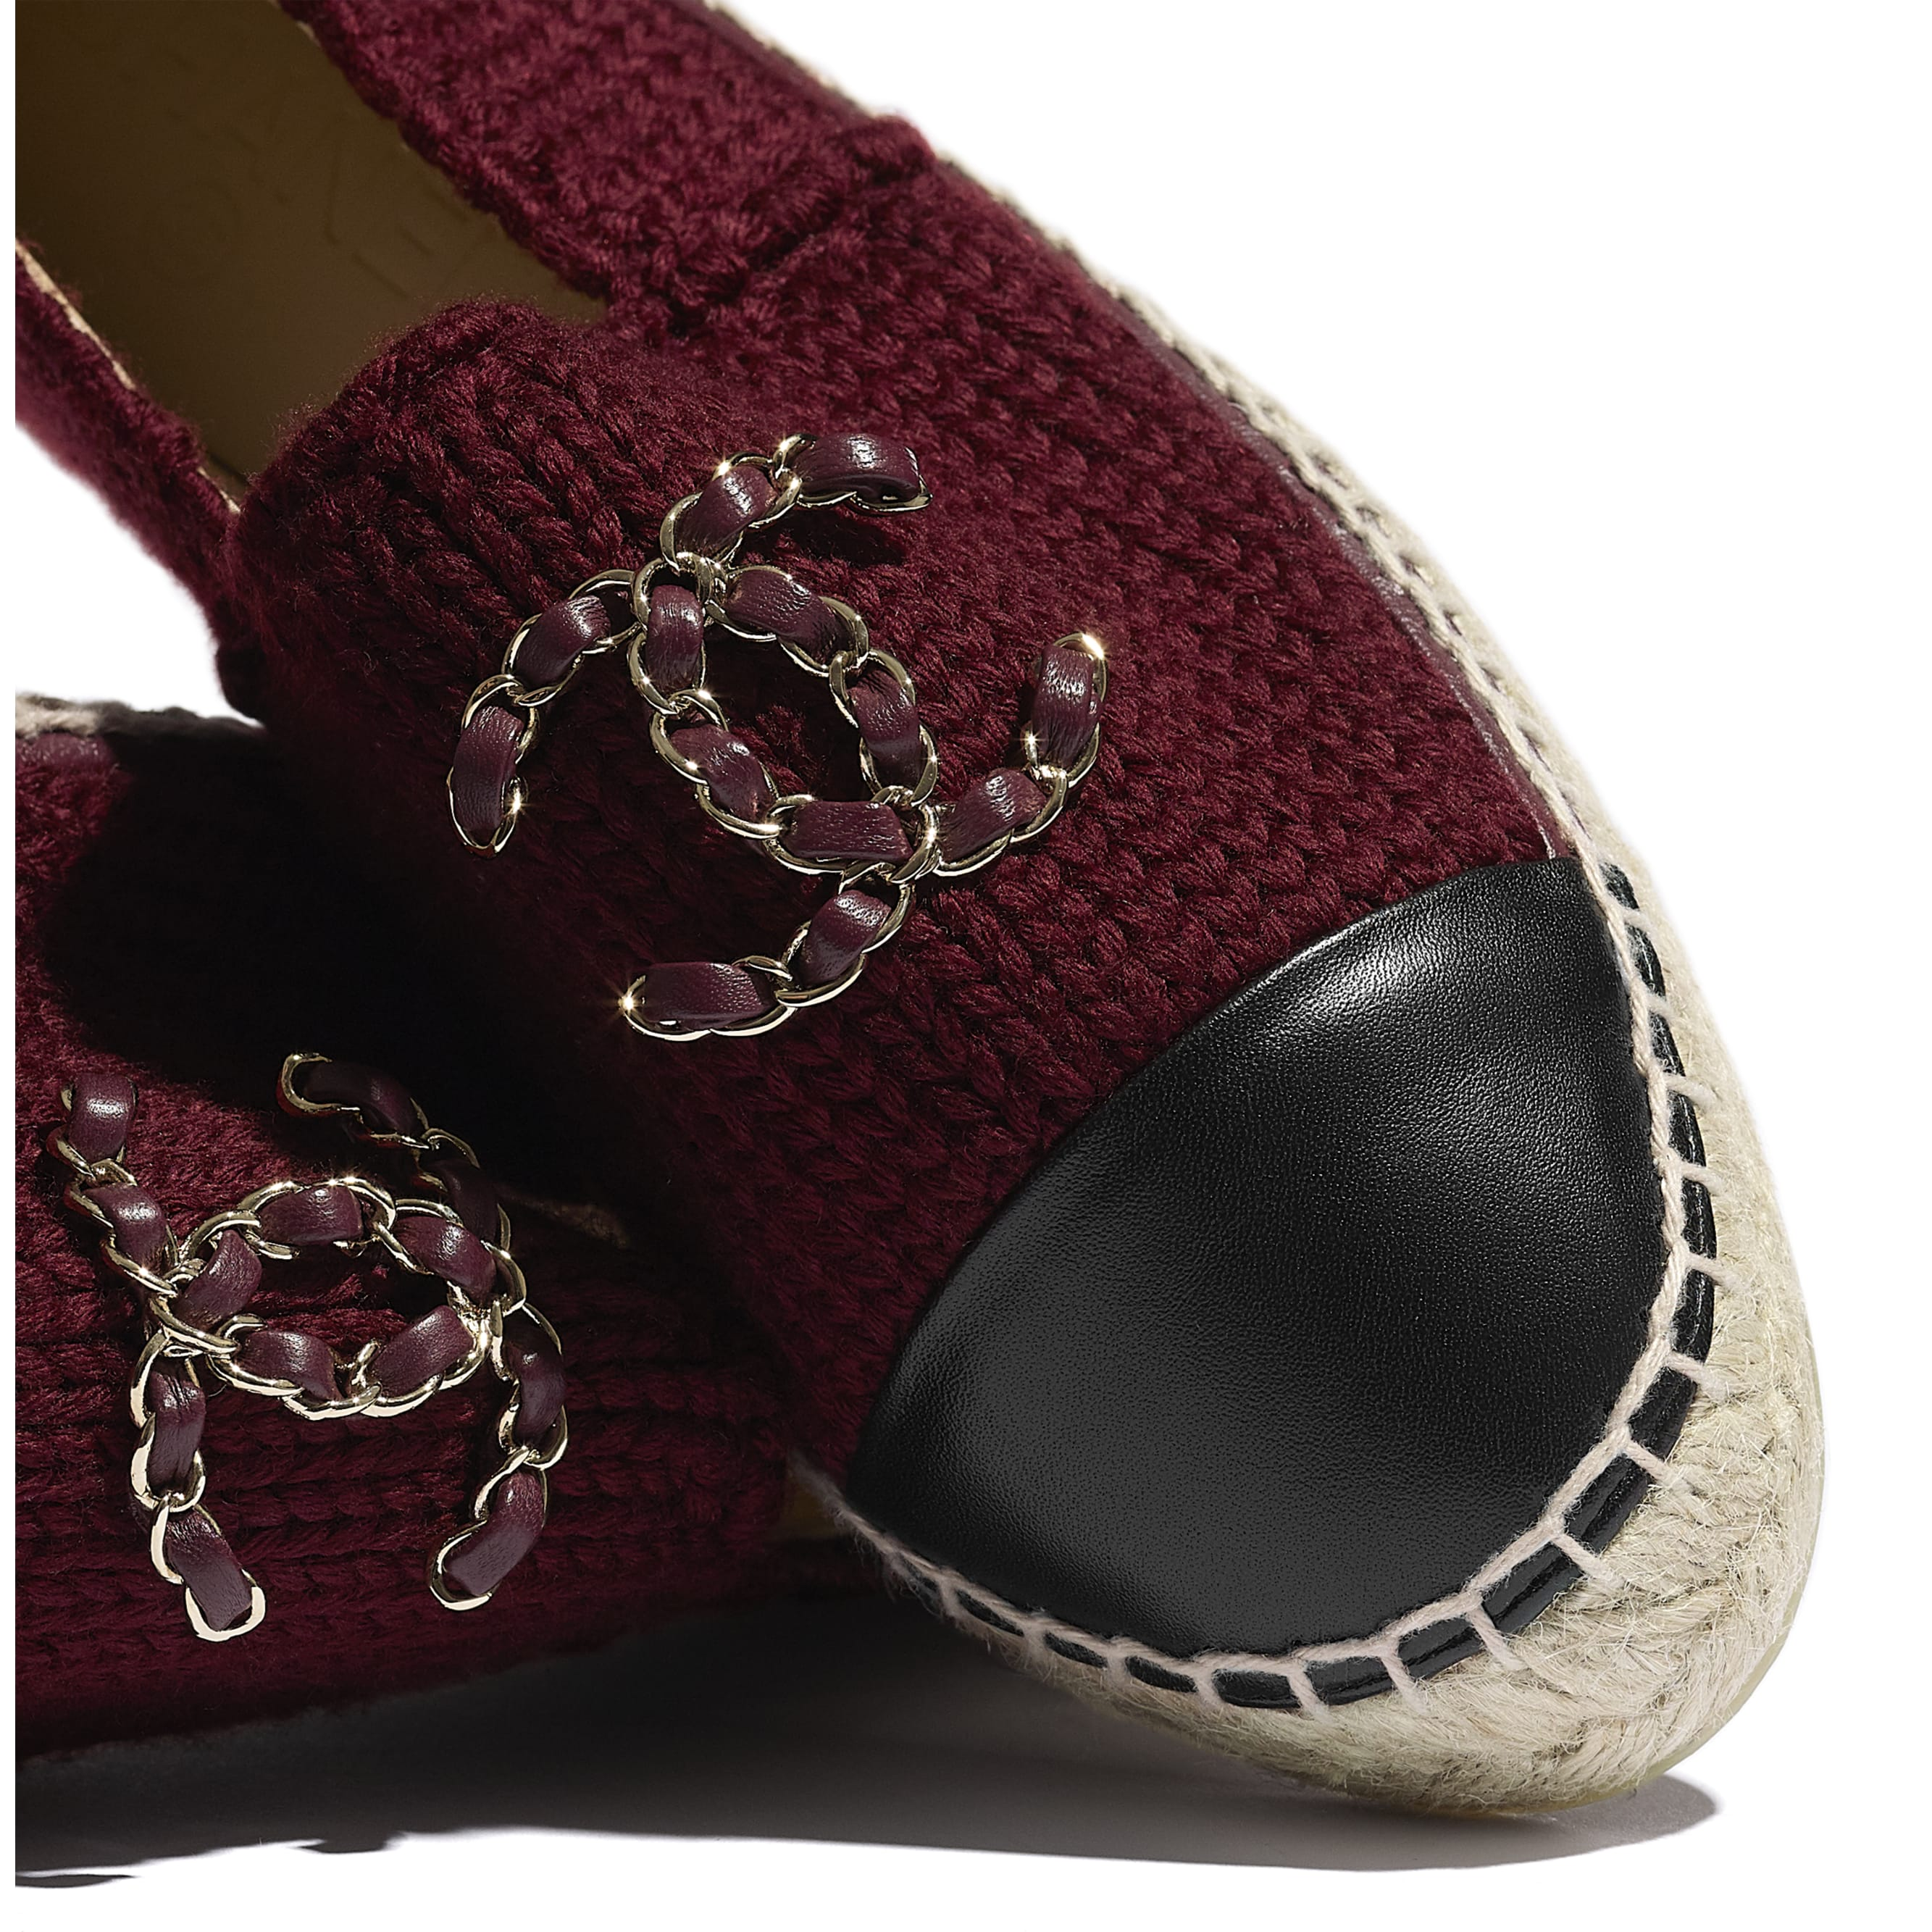 Espadrilles - Burgundy & Black - Knitted Wool & Lambskin - CHANEL - Extra view - see standard sized version